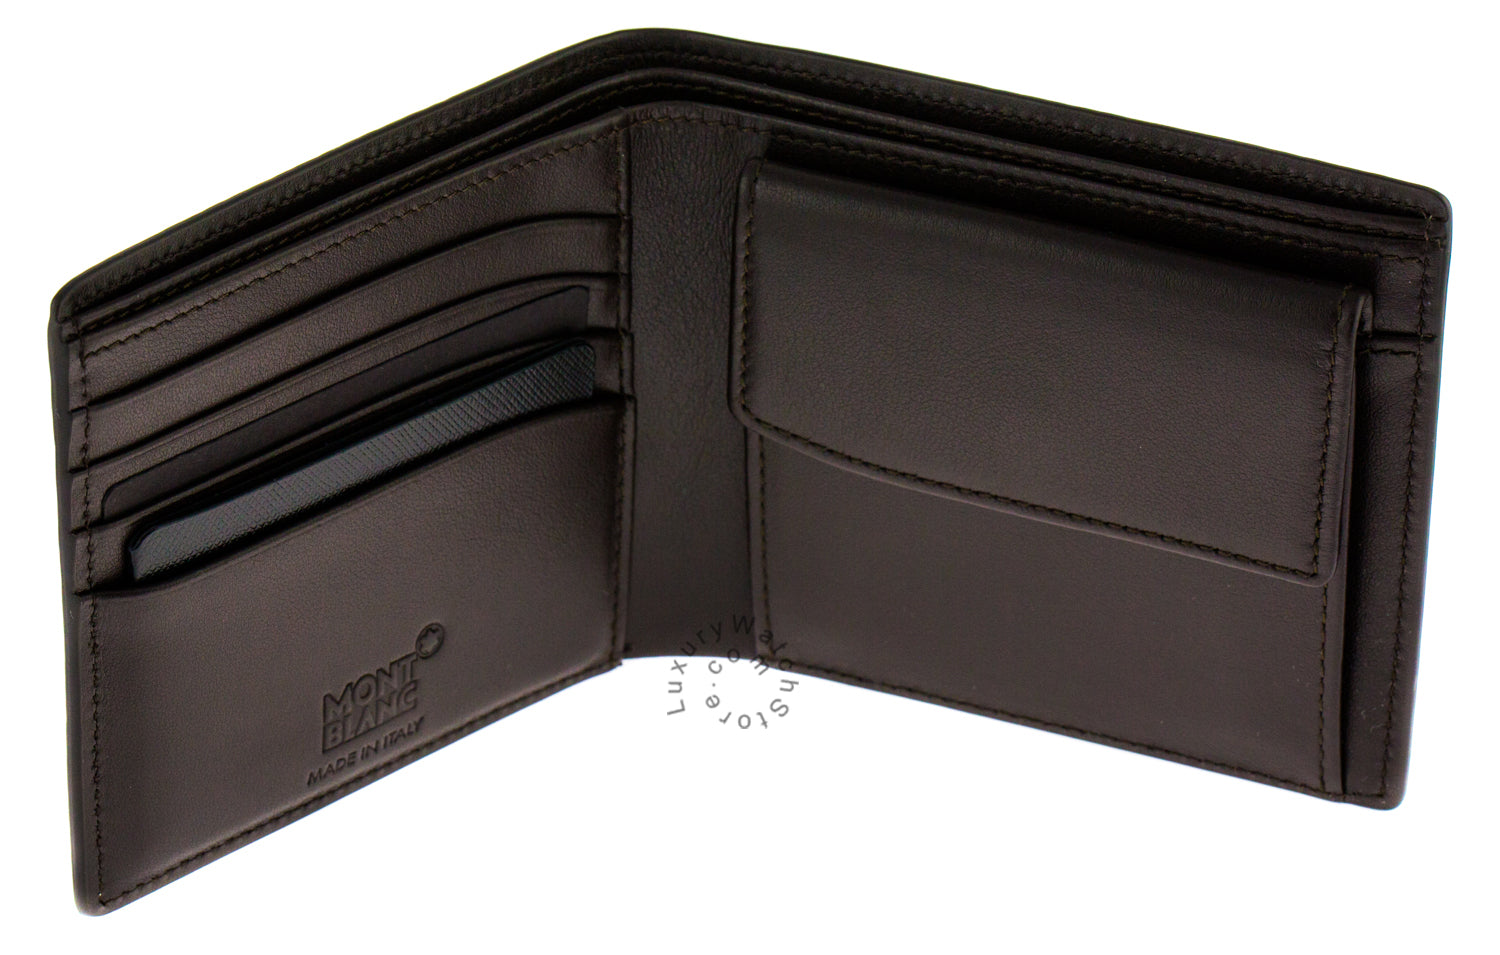 Montblanc Meisterstuck Collection Men Leather Wallet 103407 AKA 112600